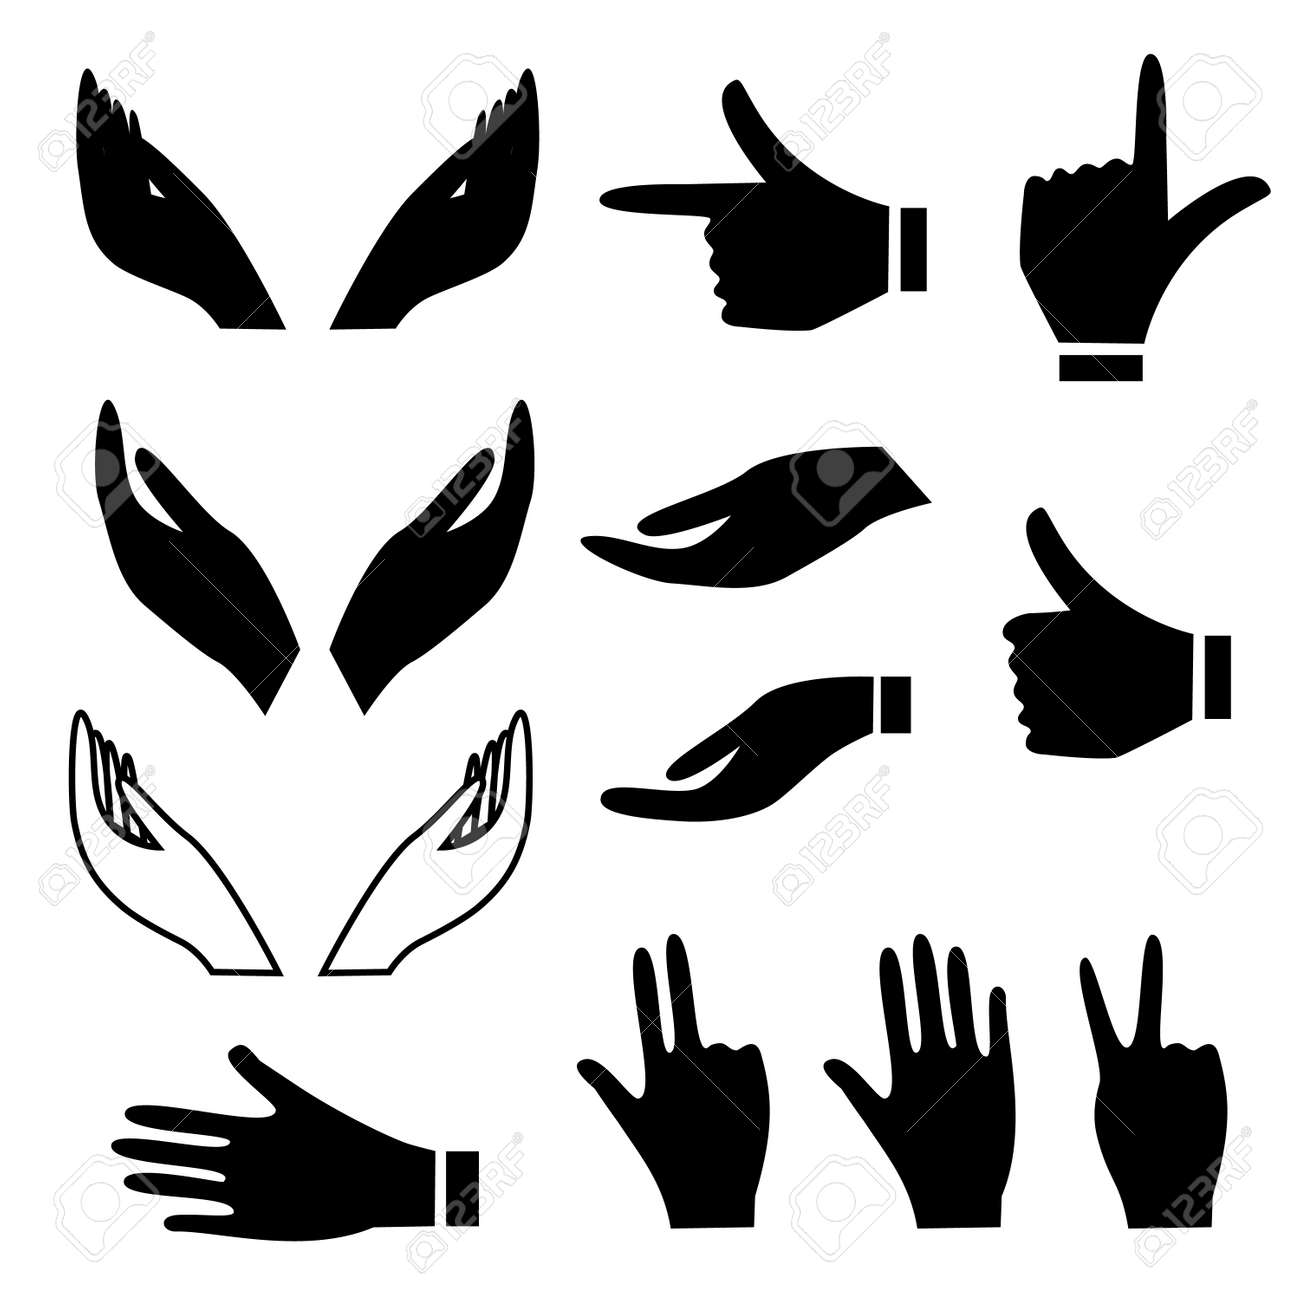 various hand signs and gestures royalty free cliparts vectors and rh 123rf com hand vector free clip art hand drawn vectors